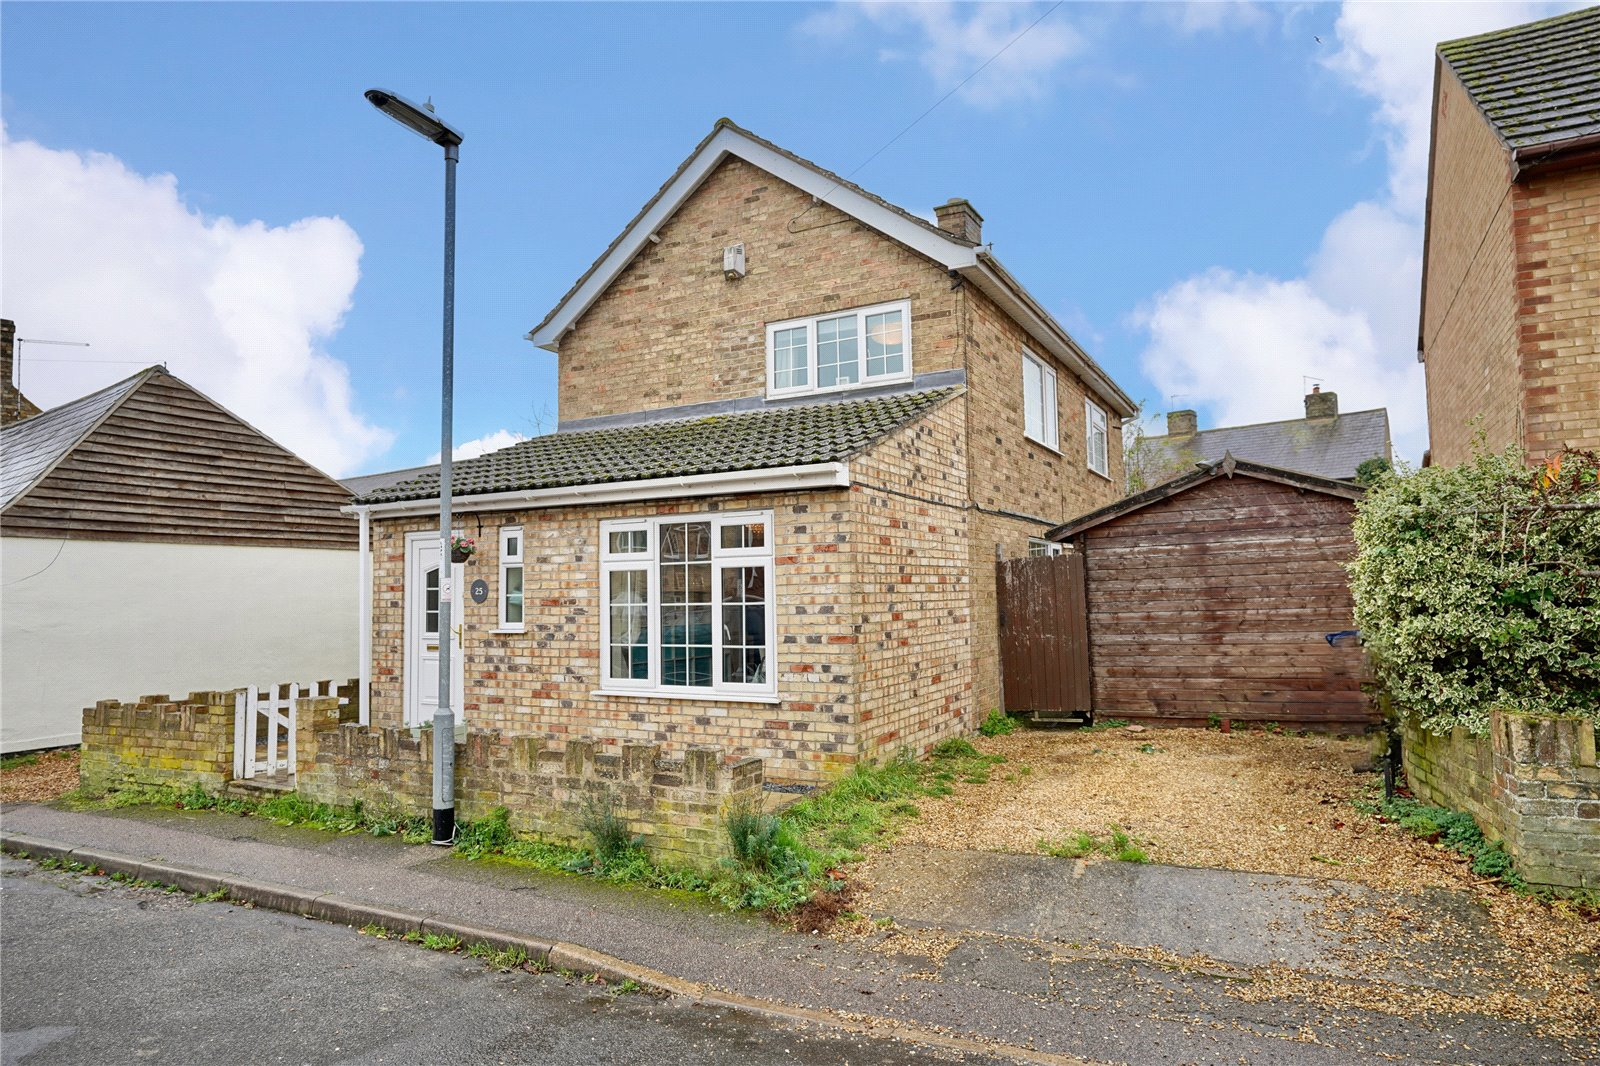 3 bed house for sale in Godmanchester, PE29 2JN  - Property Image 1